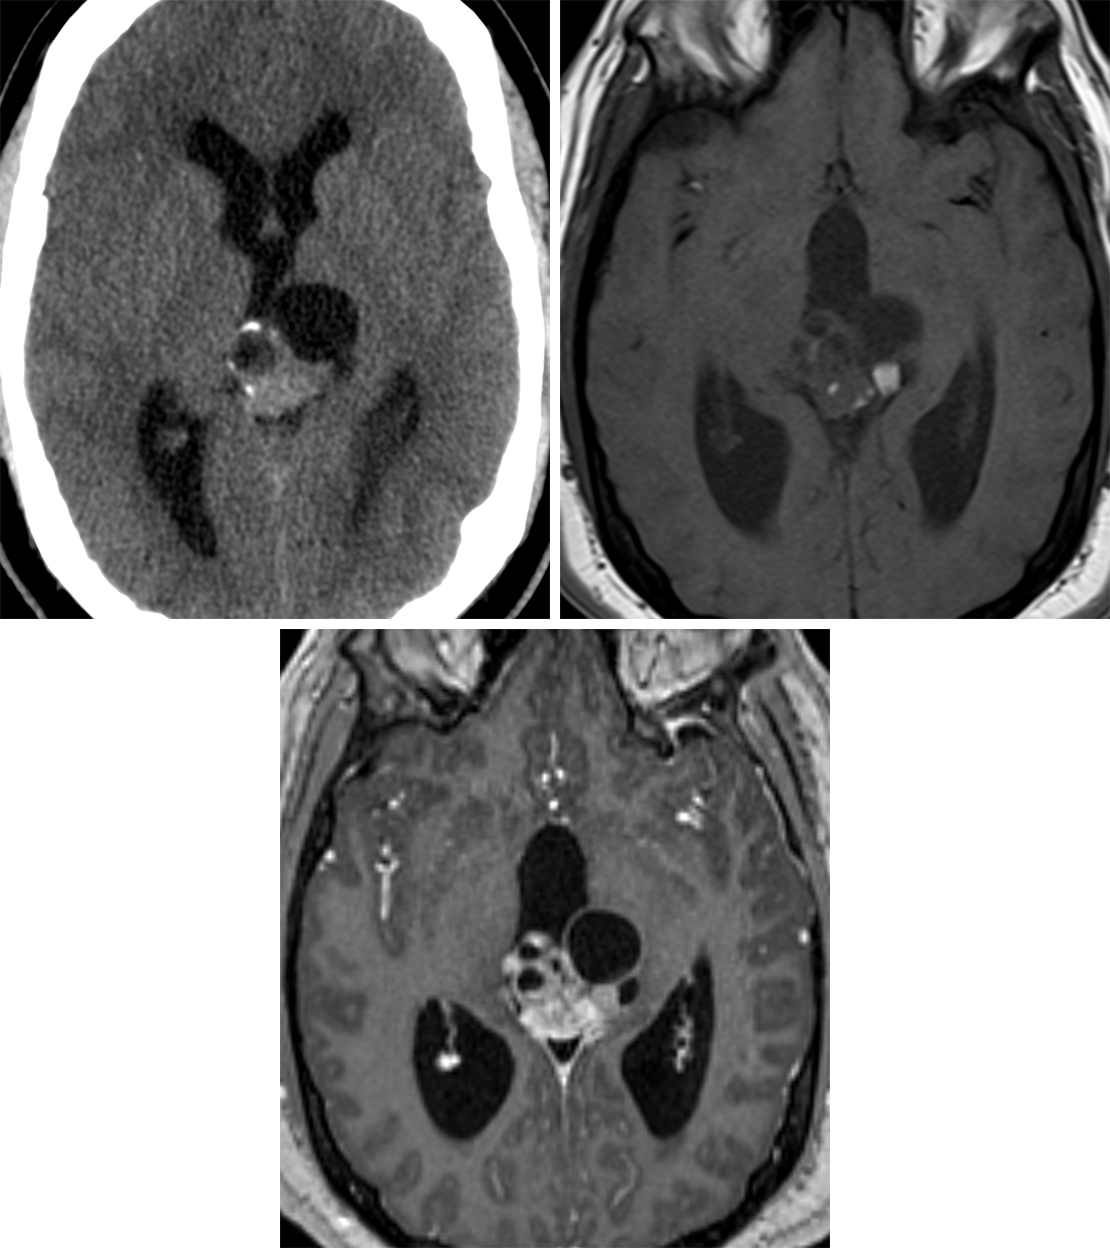 Figure 1: This complex pineal-region teratoma demonstrates areas of solid and cystic change and calcification on CT (top left) and areas of hyperintense fat signal intensity on the T1-weighted MR image (top right). Heterogeneous enhancement is a hallmark finding that illustrates the complexity of teratomas on T1 after contrast administration (bottom).